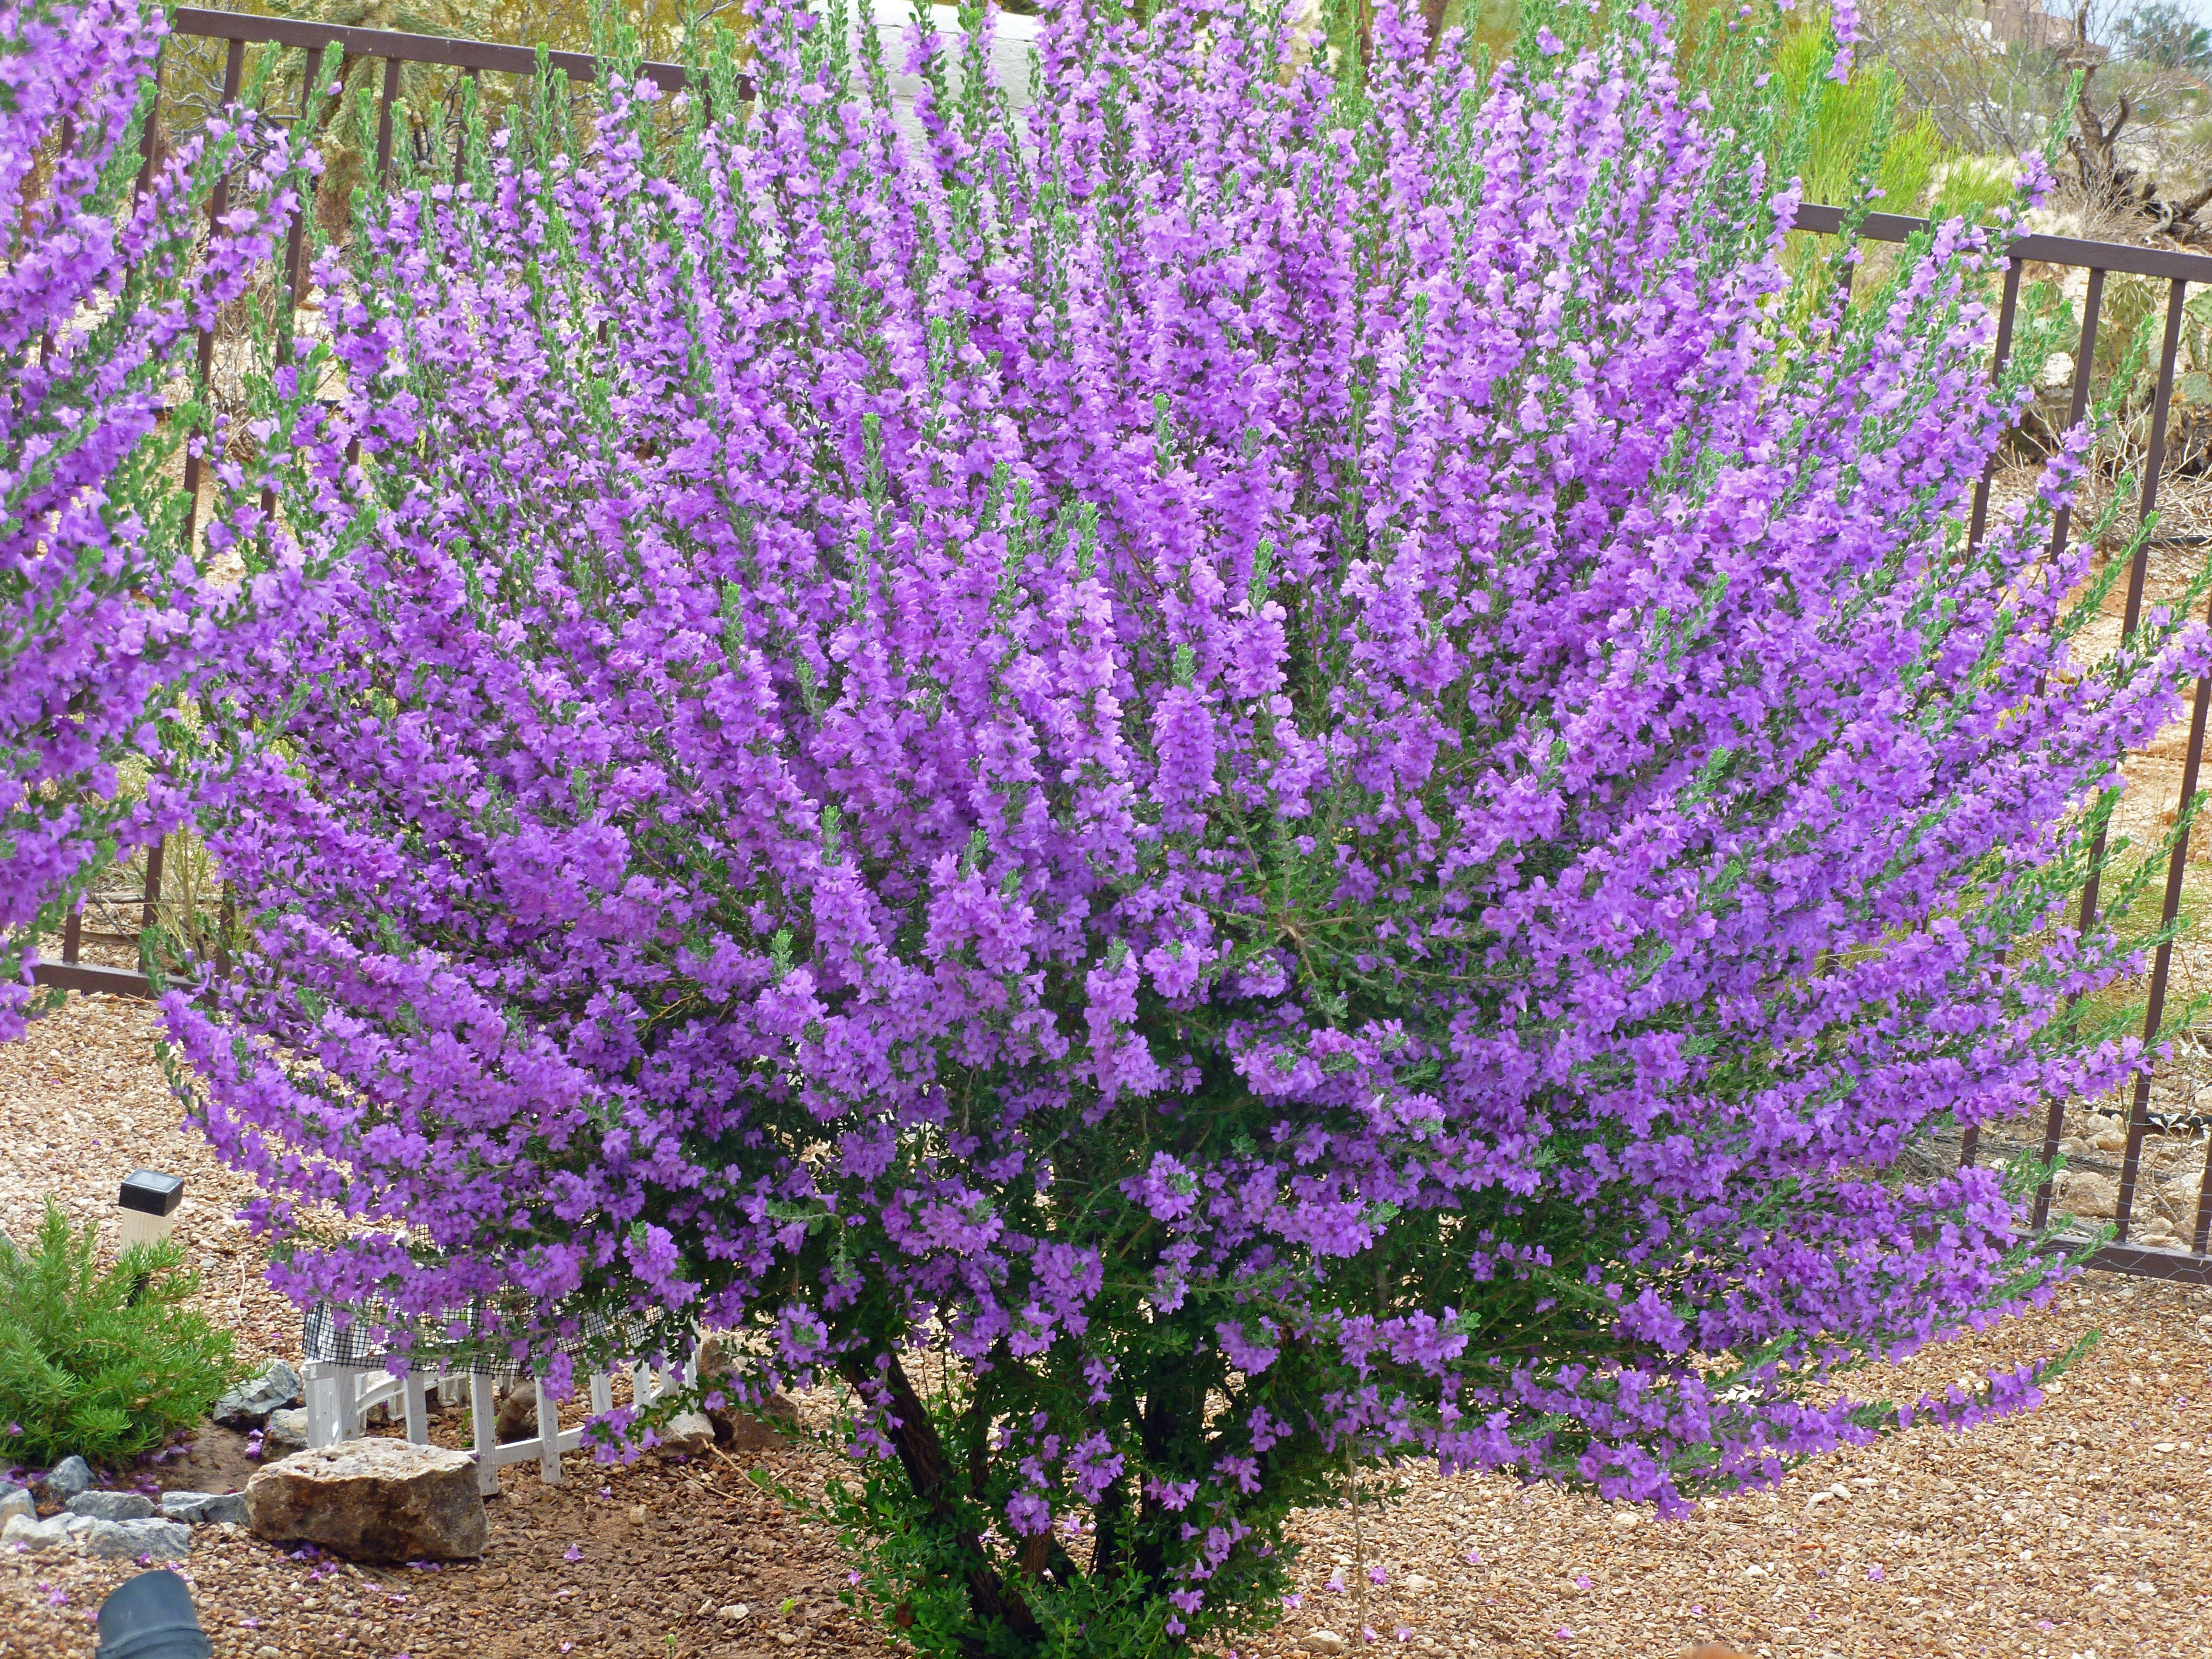 The Texas Ranger Sage Shrub Bushes With Purple Or White Flowers Purple Flowering Bush Purple Flowers Garden Sage Bush